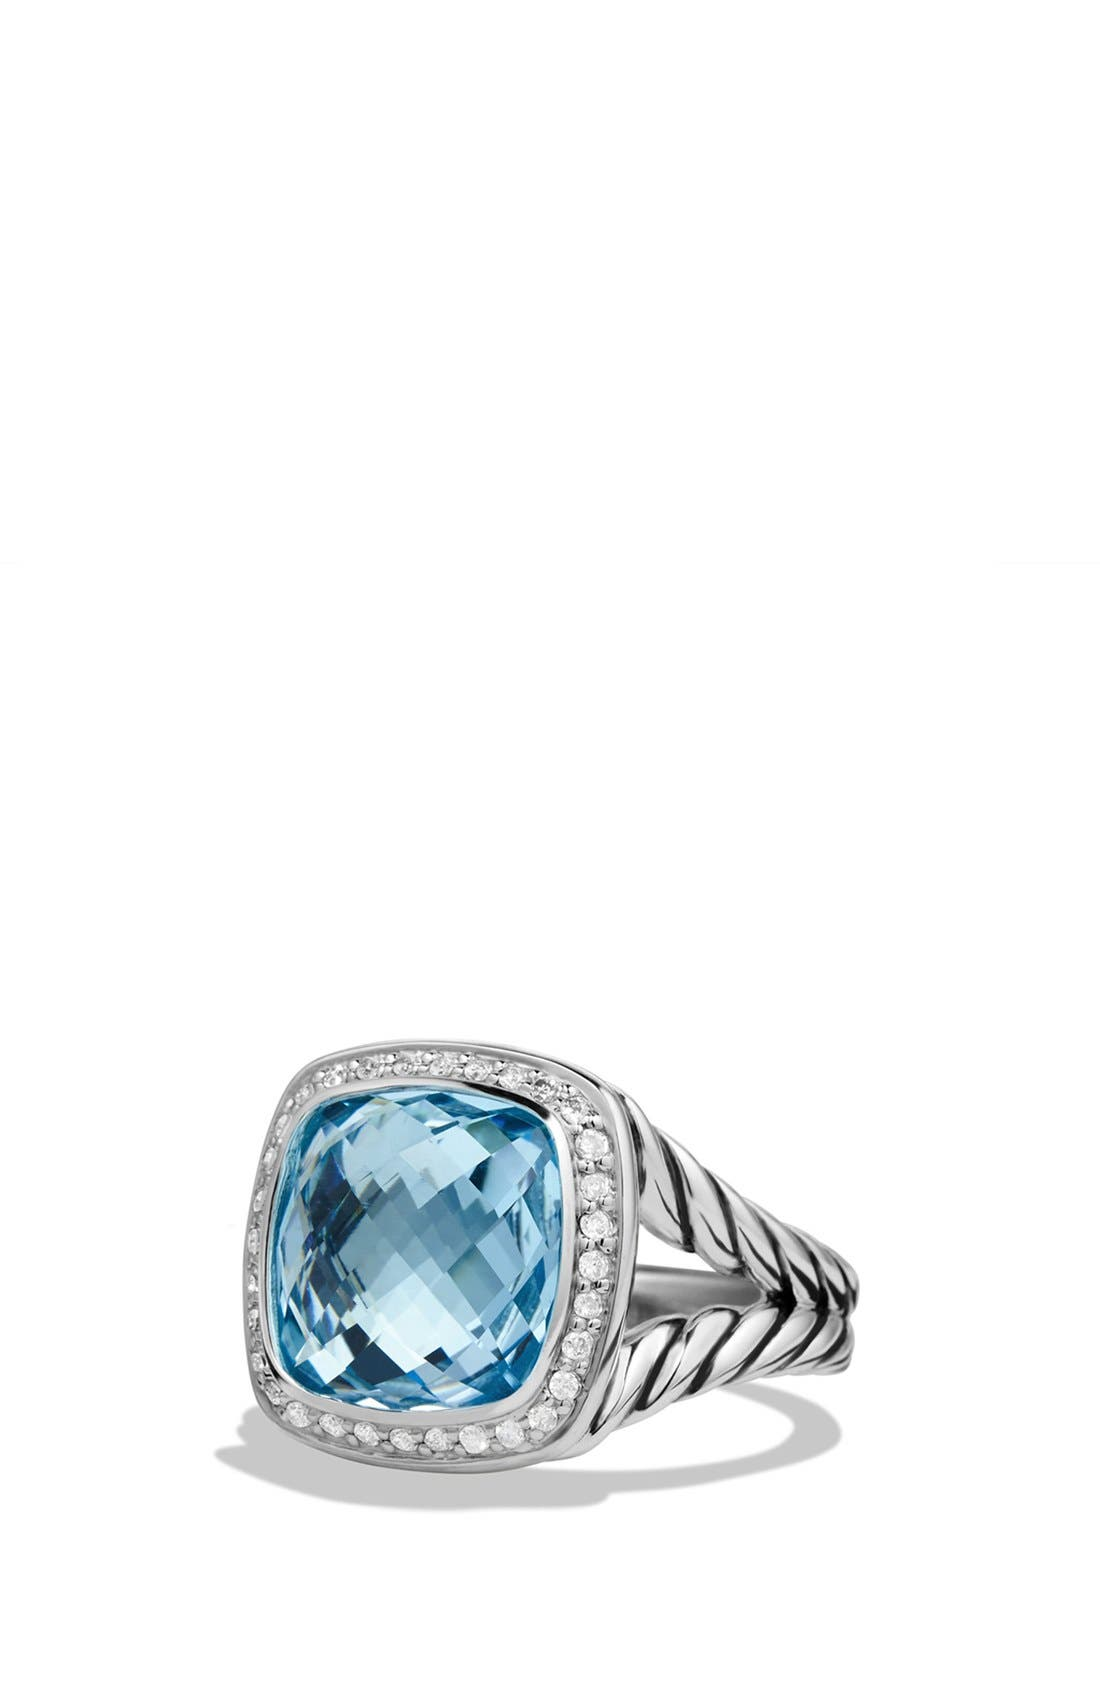 'Albion' Ring with Semiprecious Stone and Diamonds,                         Main,                         color, Blue Topaz